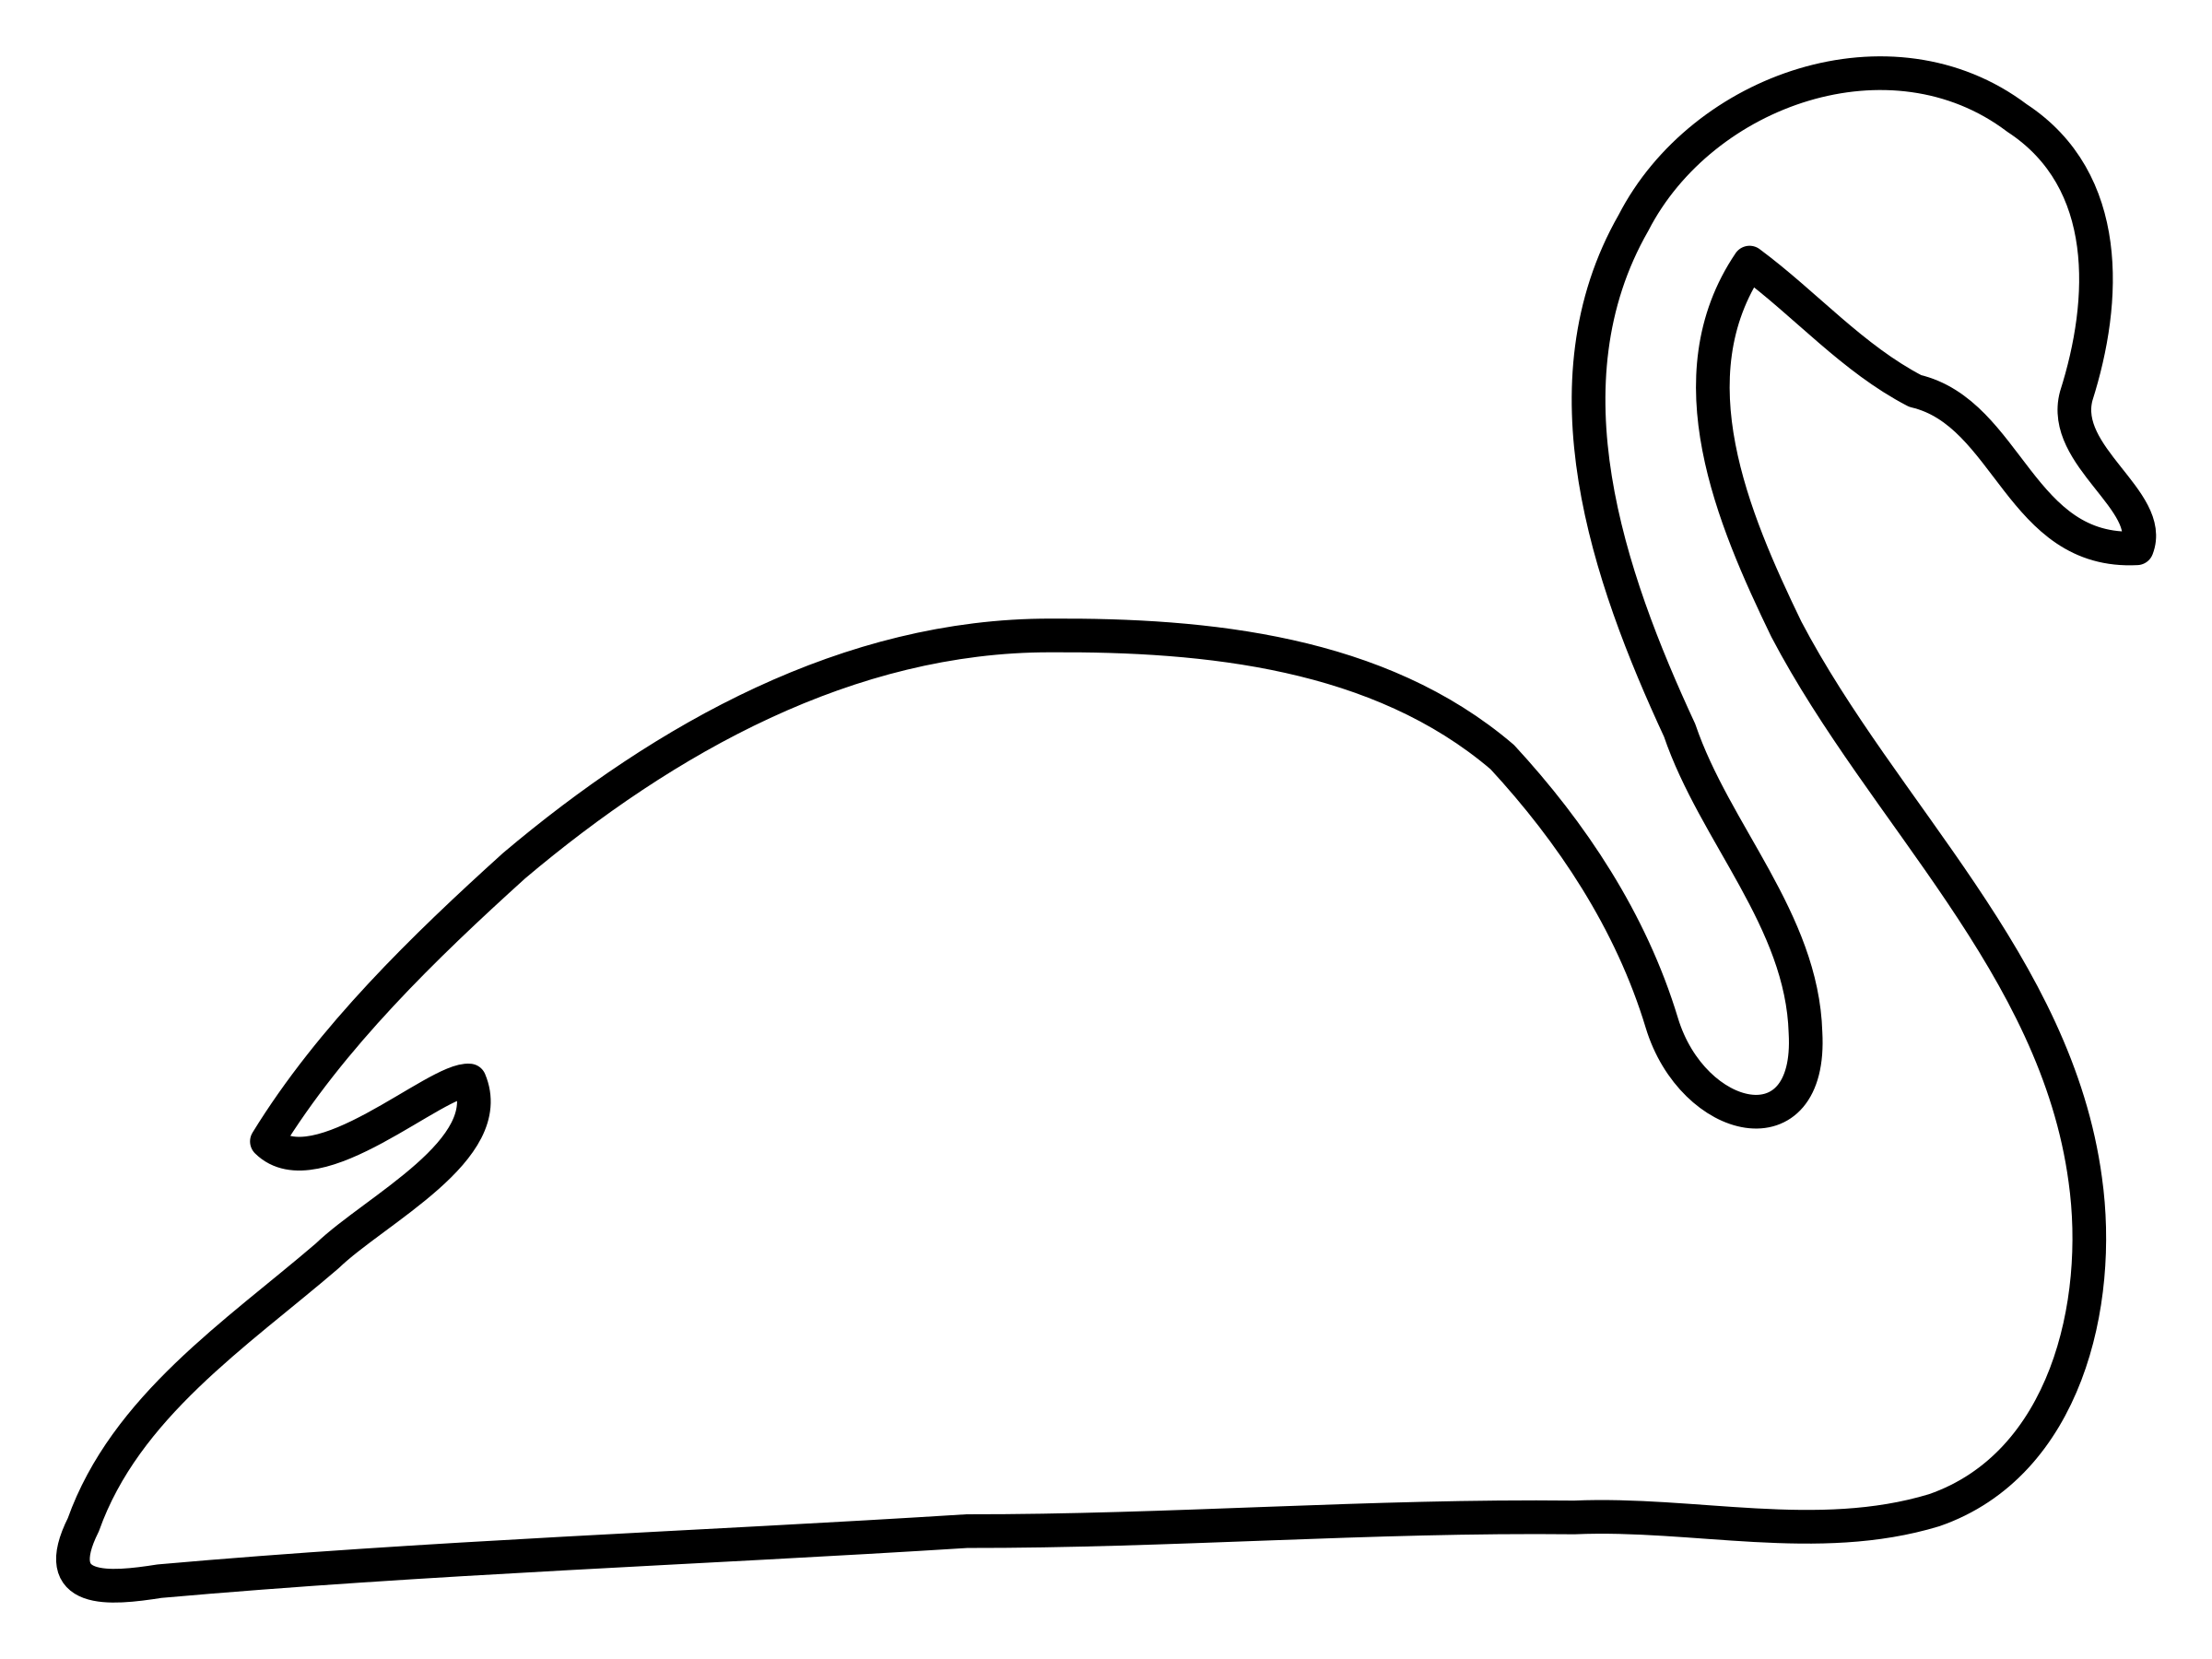 White icons free and. Swan silhouette png clipart library